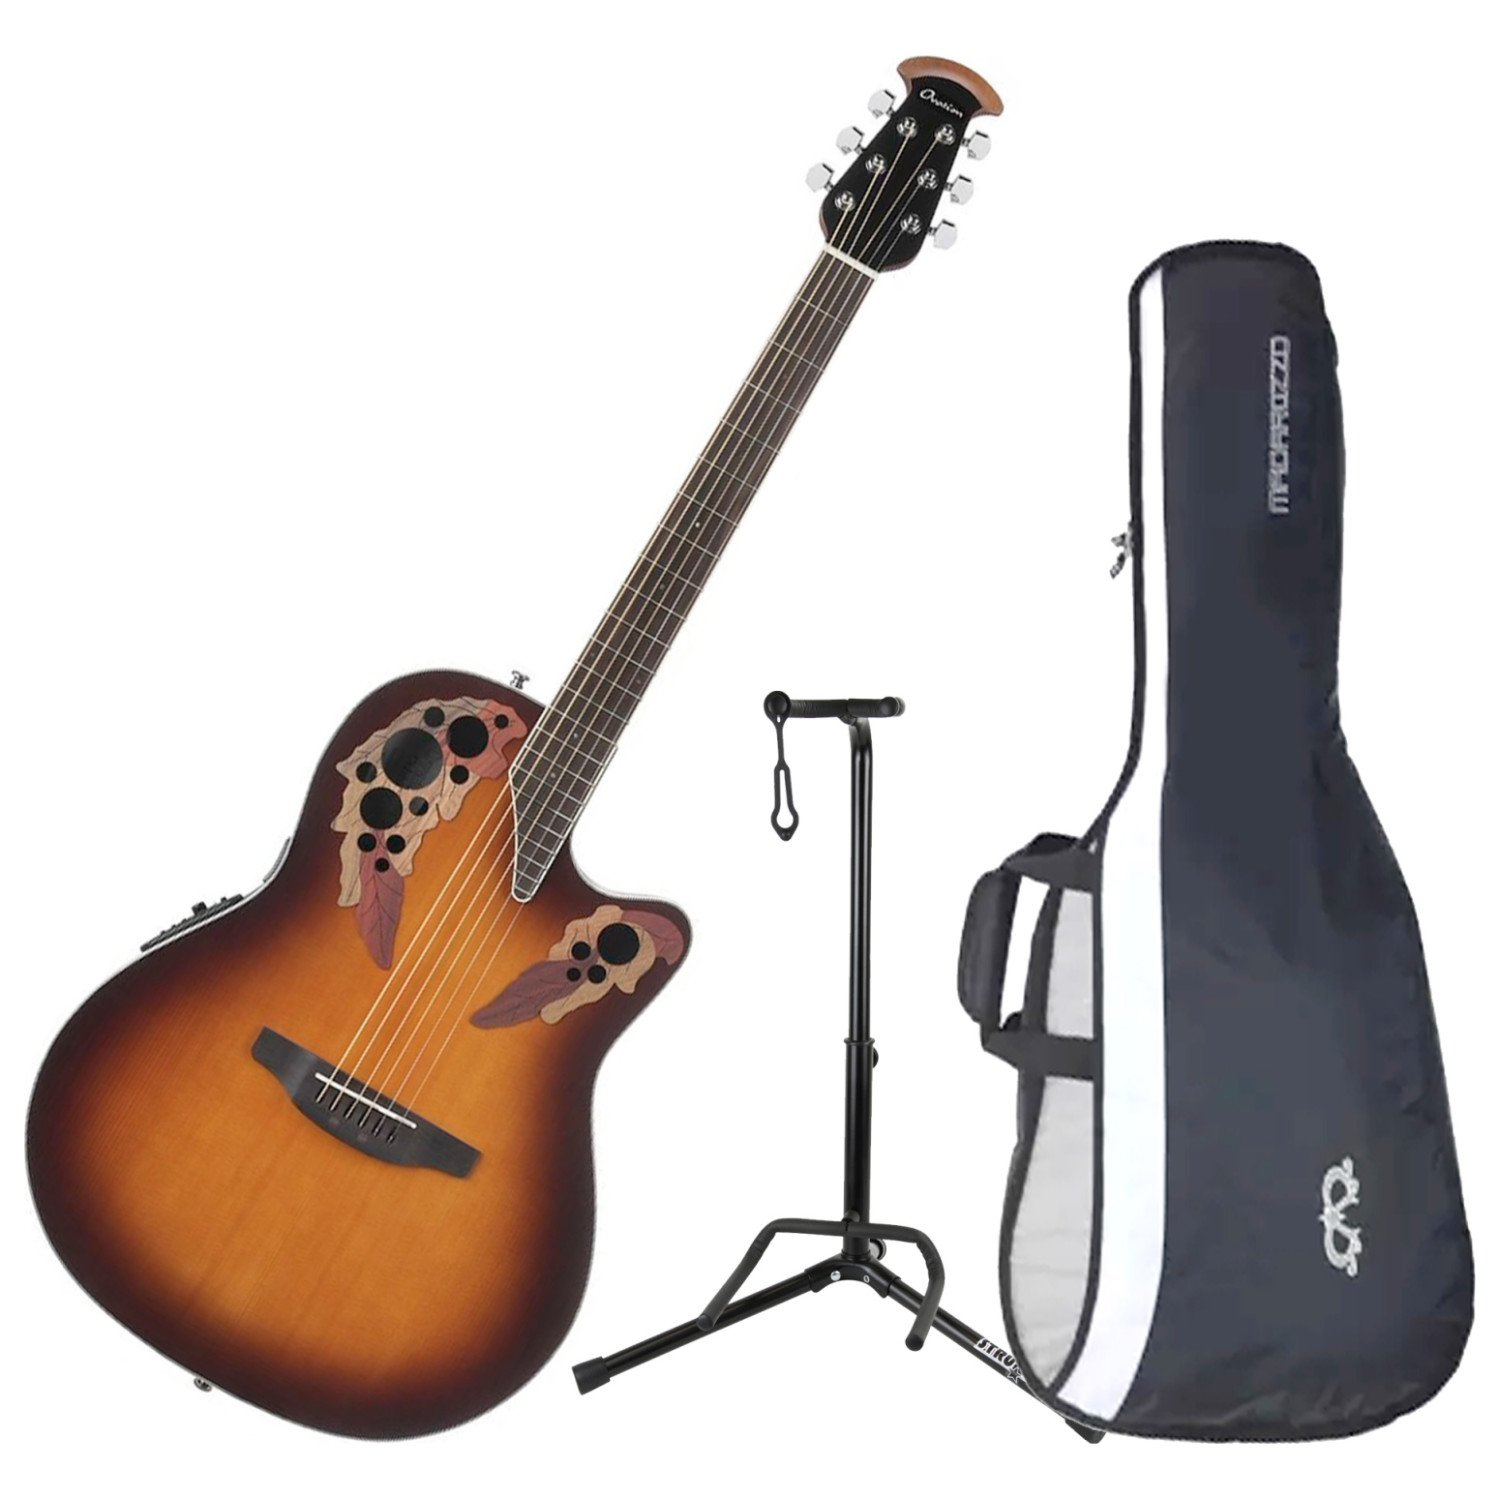 Ovation CE48-1 Celebrity Elite Super Shallow Sunburst Acoustic/Electric Guitar with Gig Bag and Guitar Stand by Ovation